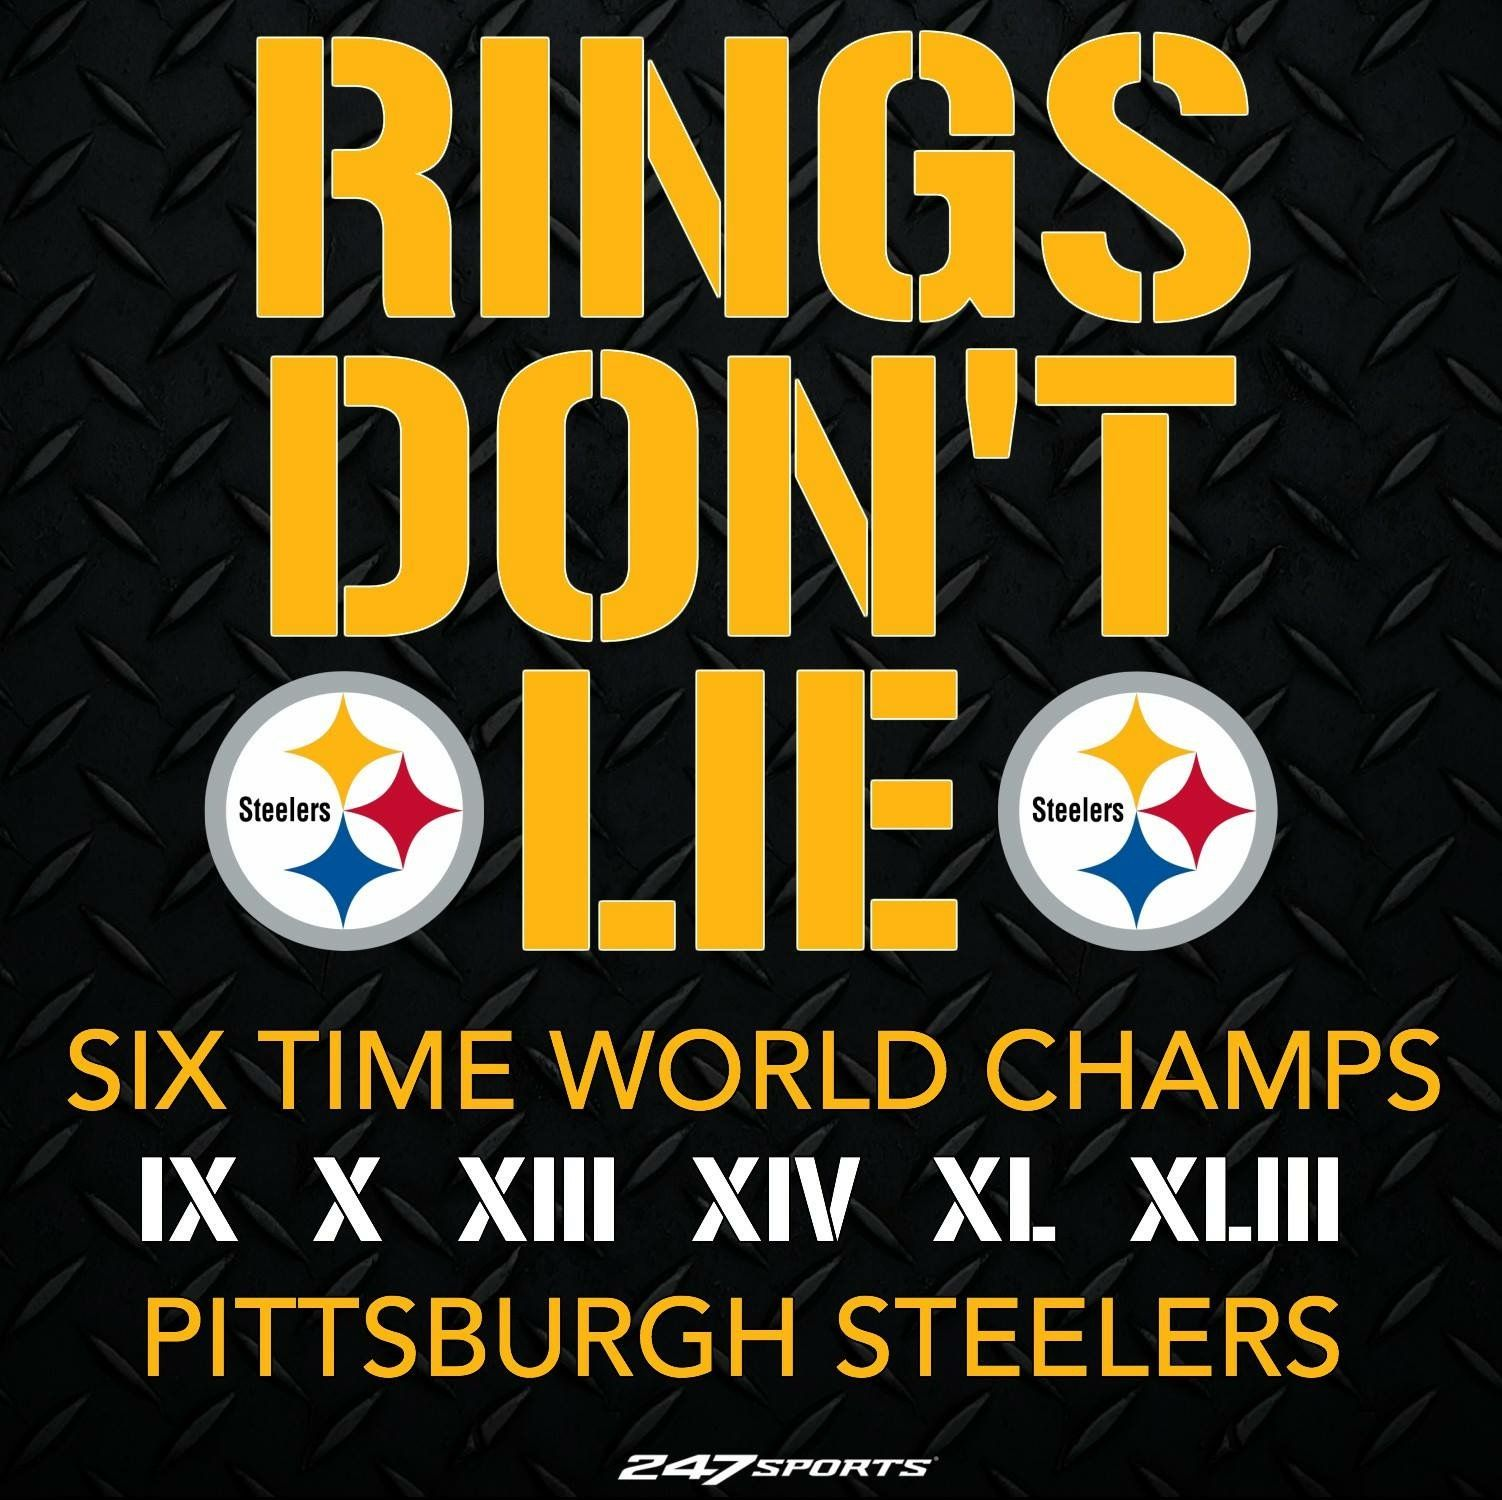 Pin by Latrice Tyler on Pittsburgh steelers Pittsburgh